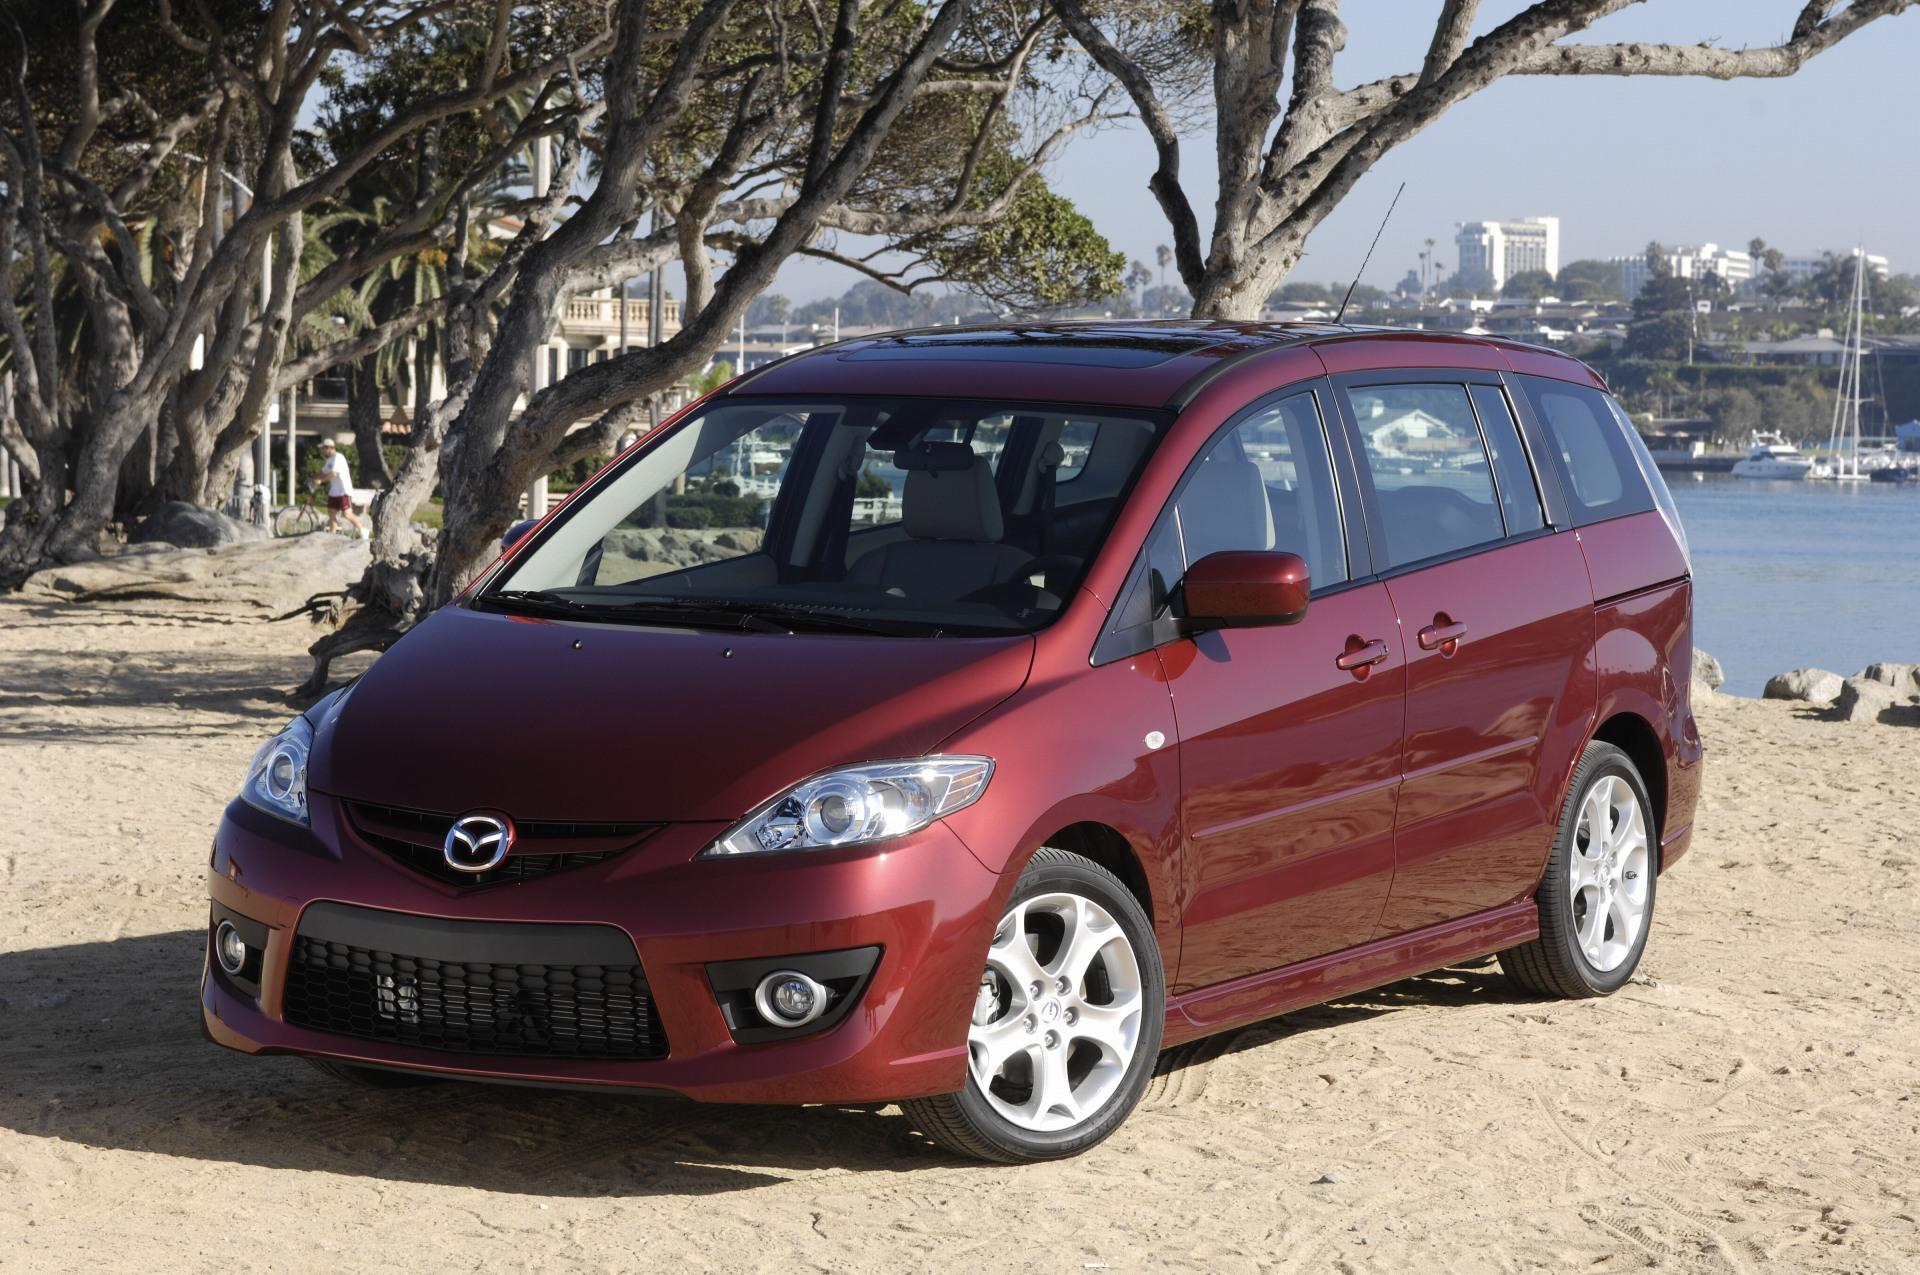 2009 mazda 5 technical specifications and data engine. Black Bedroom Furniture Sets. Home Design Ideas